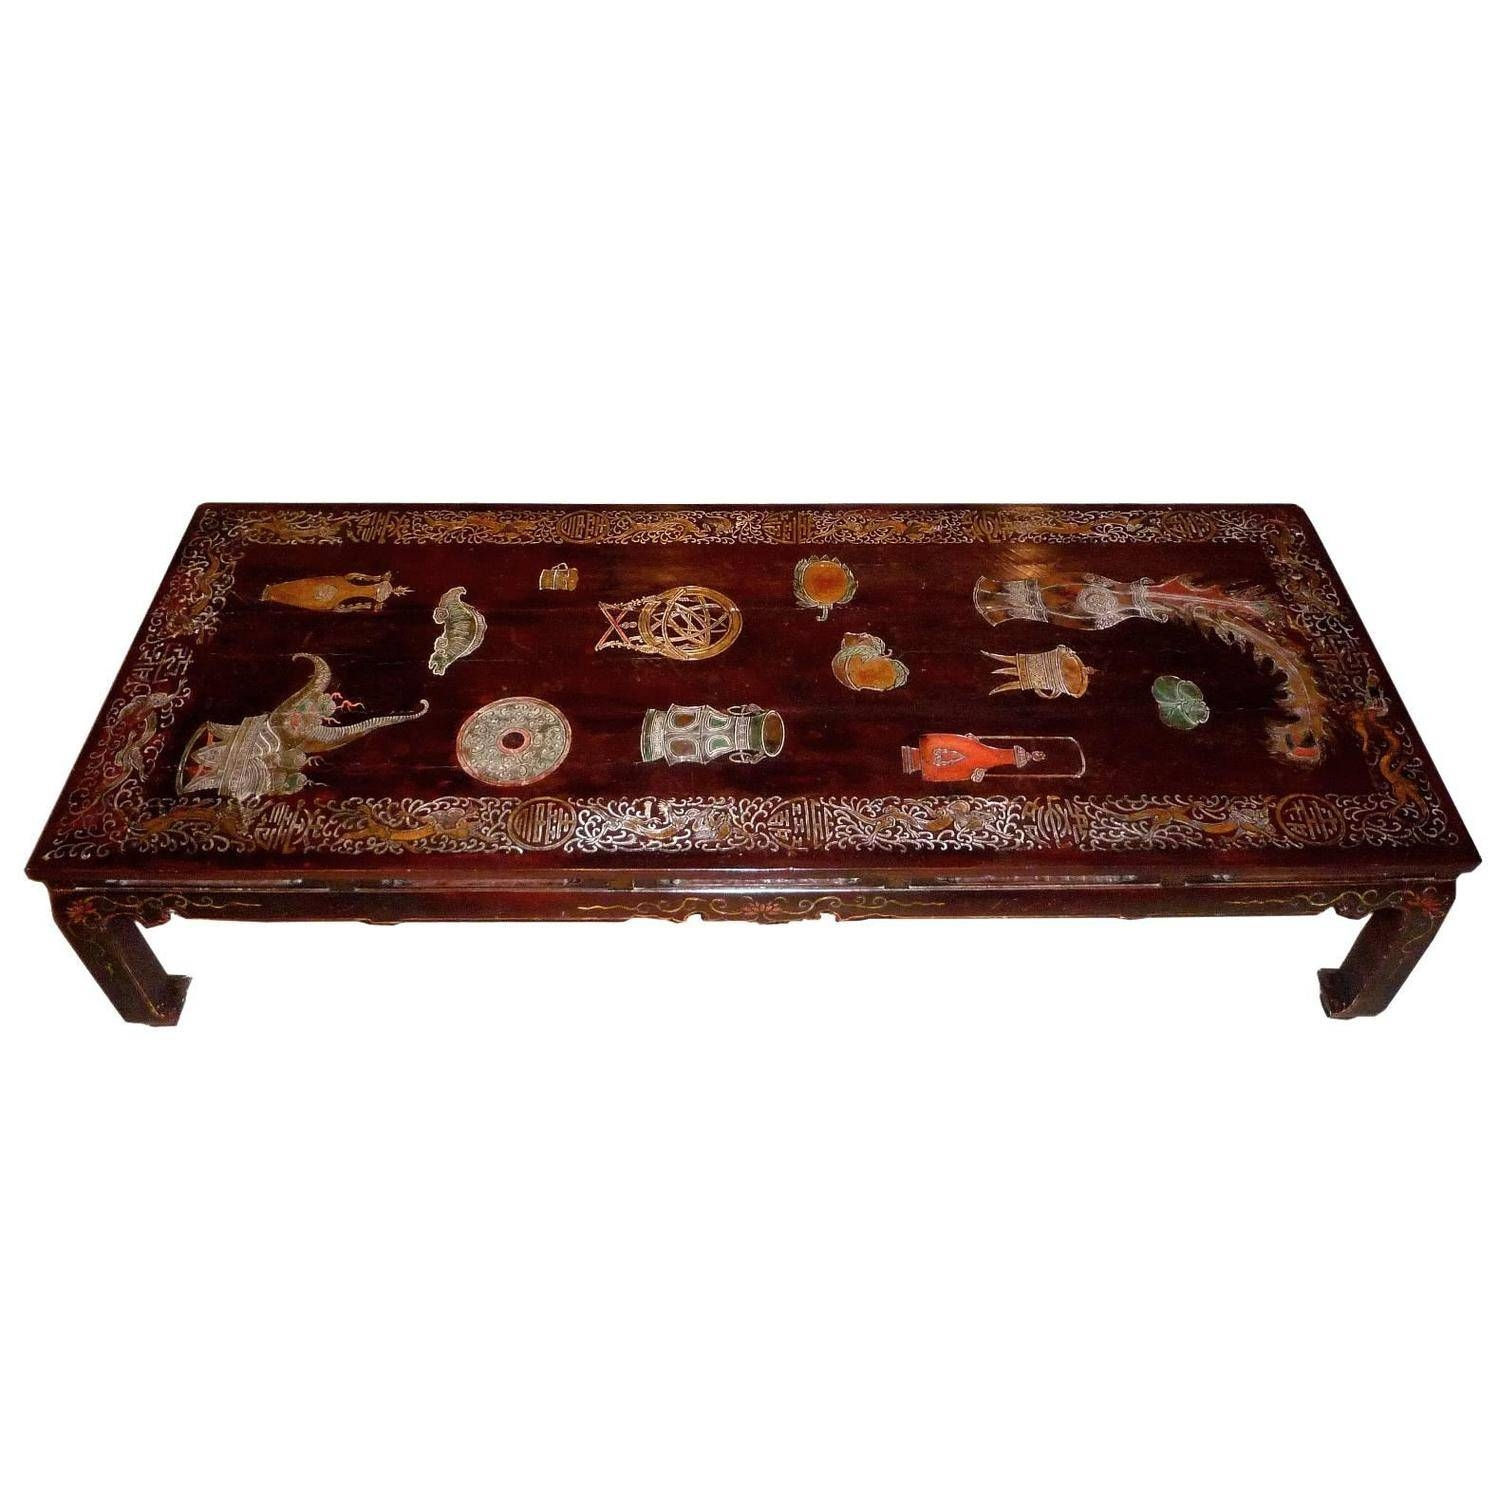 20Th Century French Coffee Table, The Top Tray In Chinese regarding Lacquer Coffee Tables (Image 3 of 30)